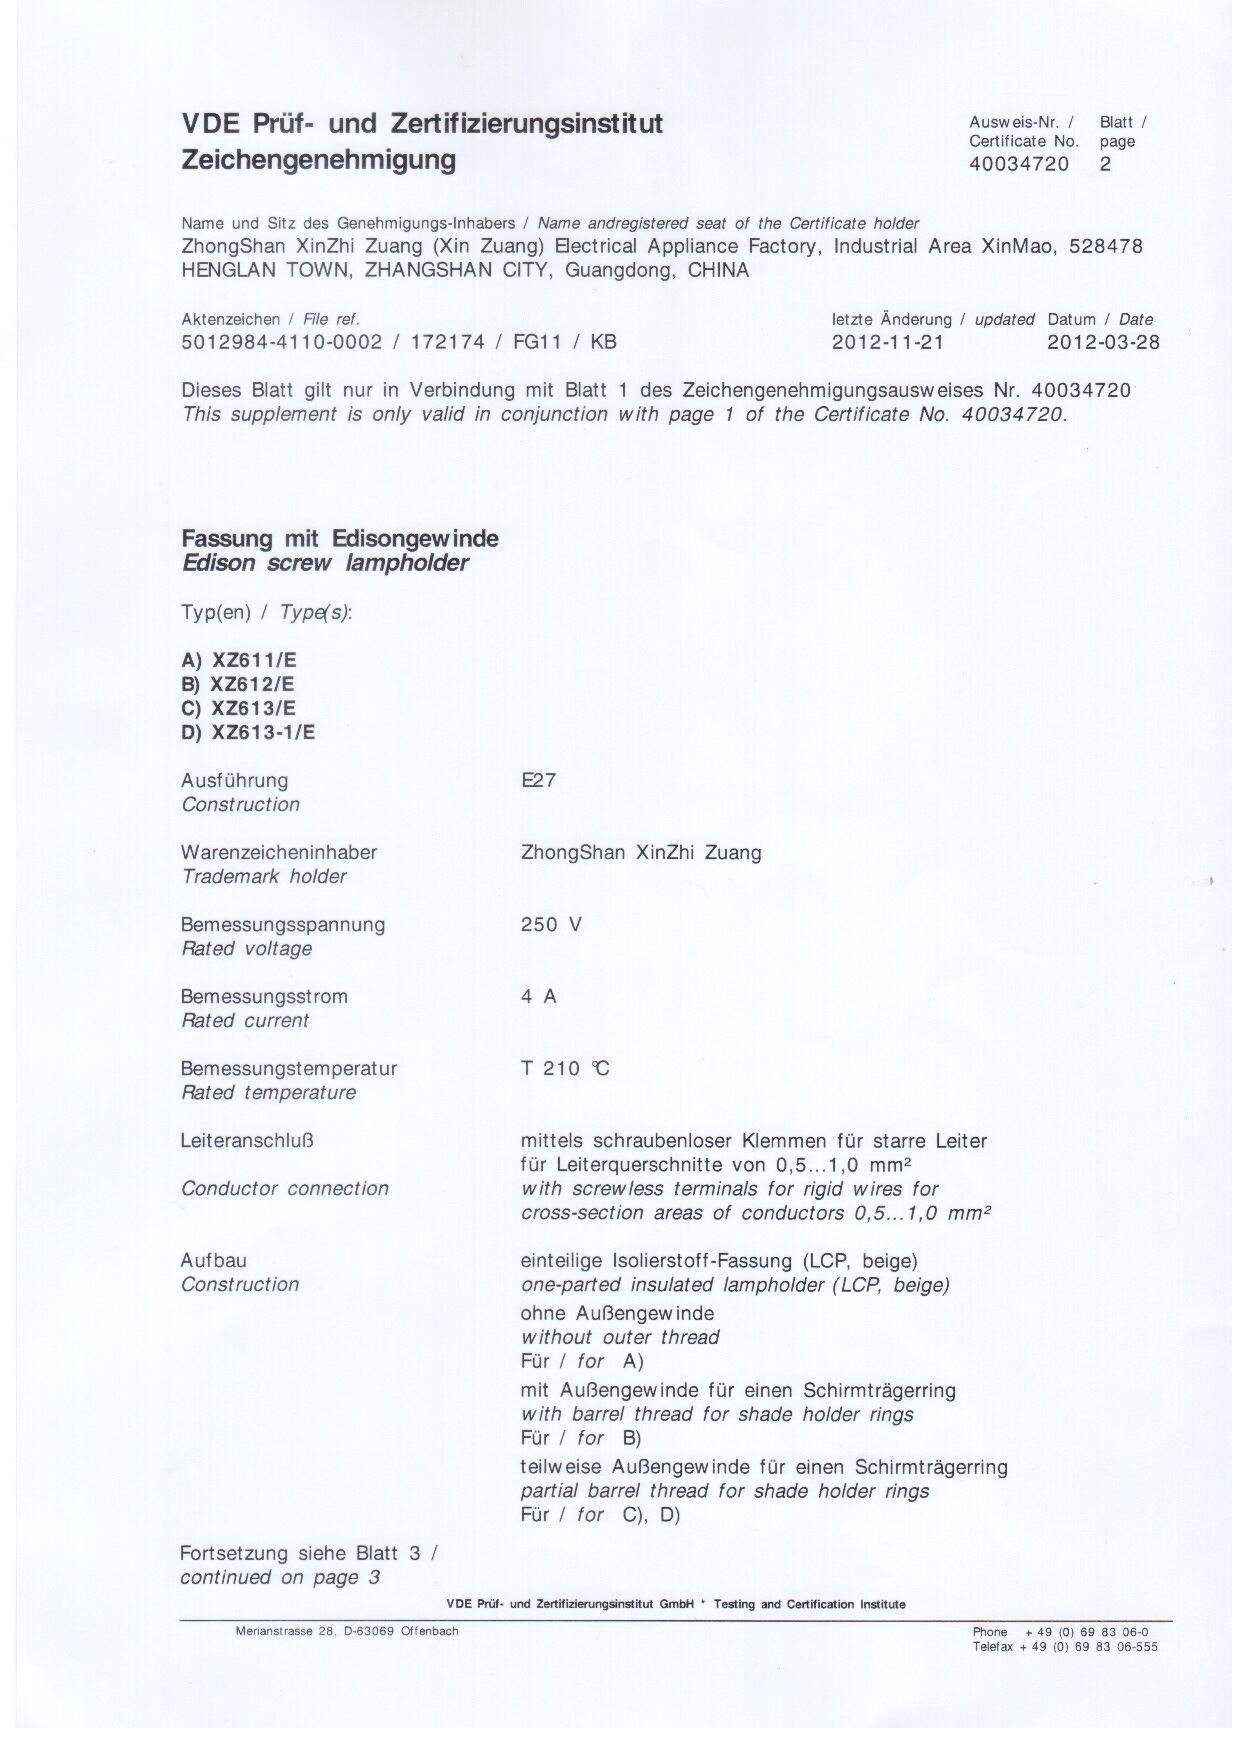 supplier's electrical VDE certificate